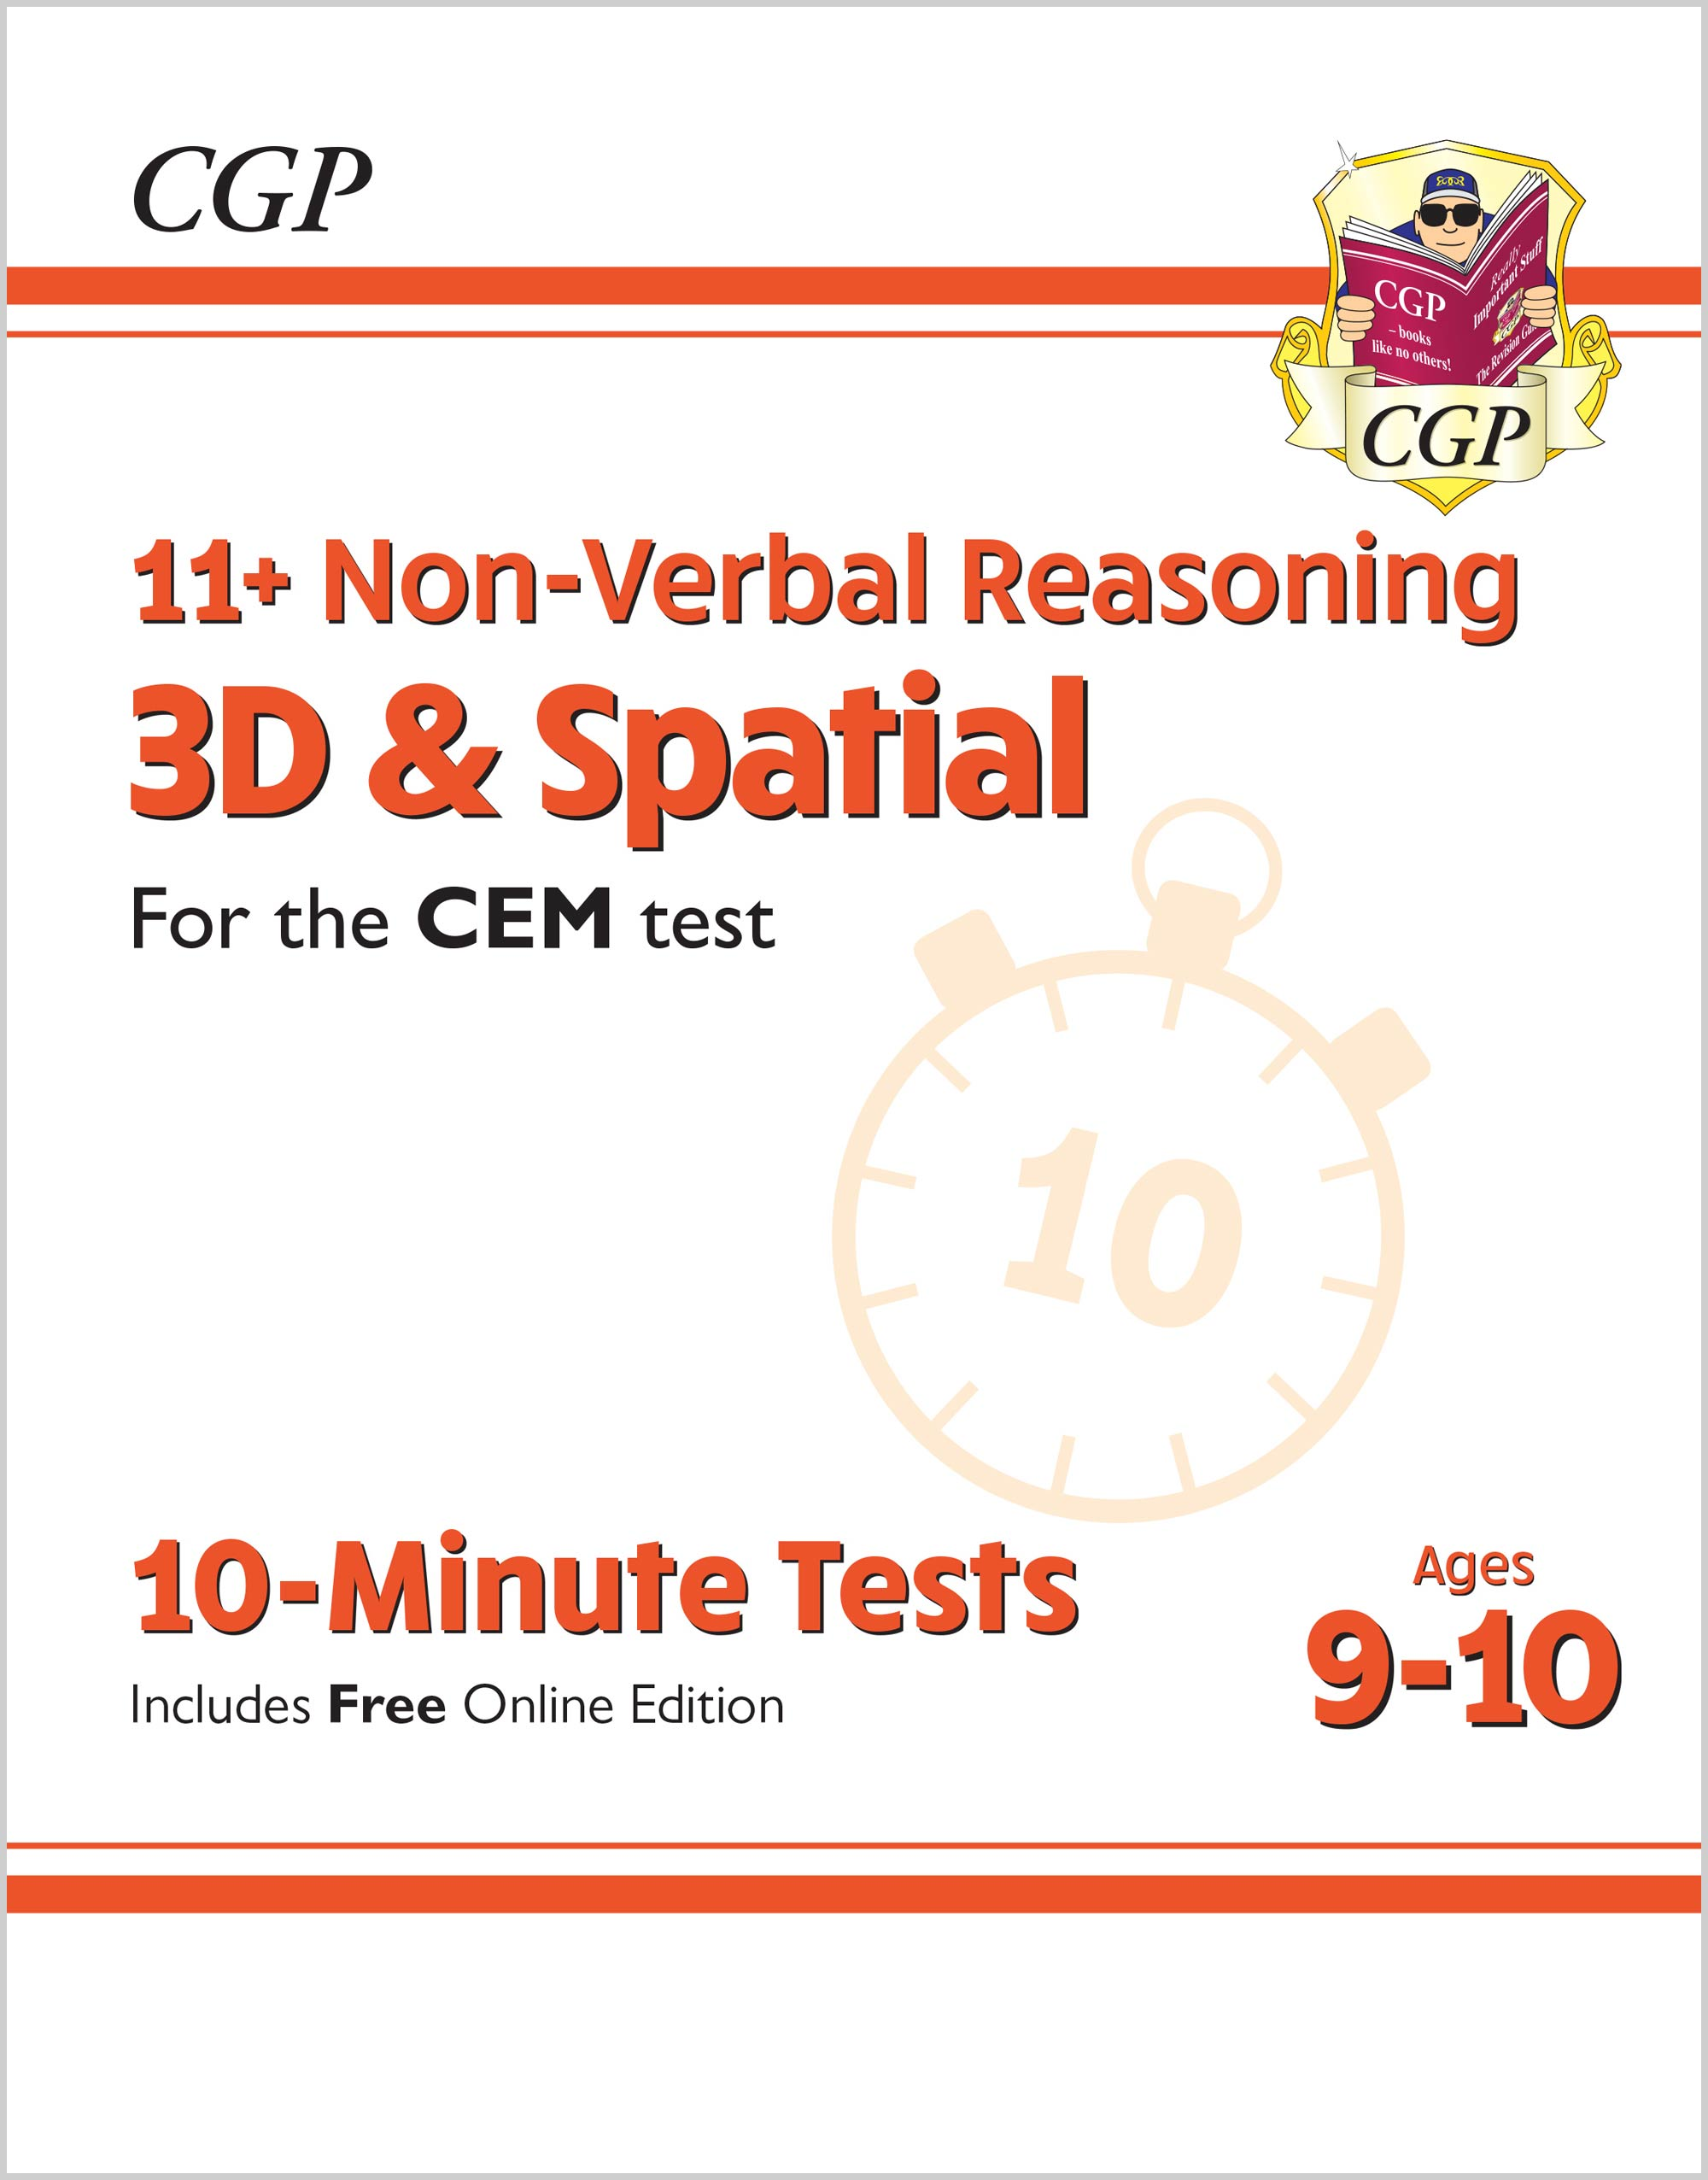 N5DXPDE1 - New 11+ CEM 10-Minute Tests: Non-Verbal Reasoning 3D & Spatial - Ages 9-10 (with Online E